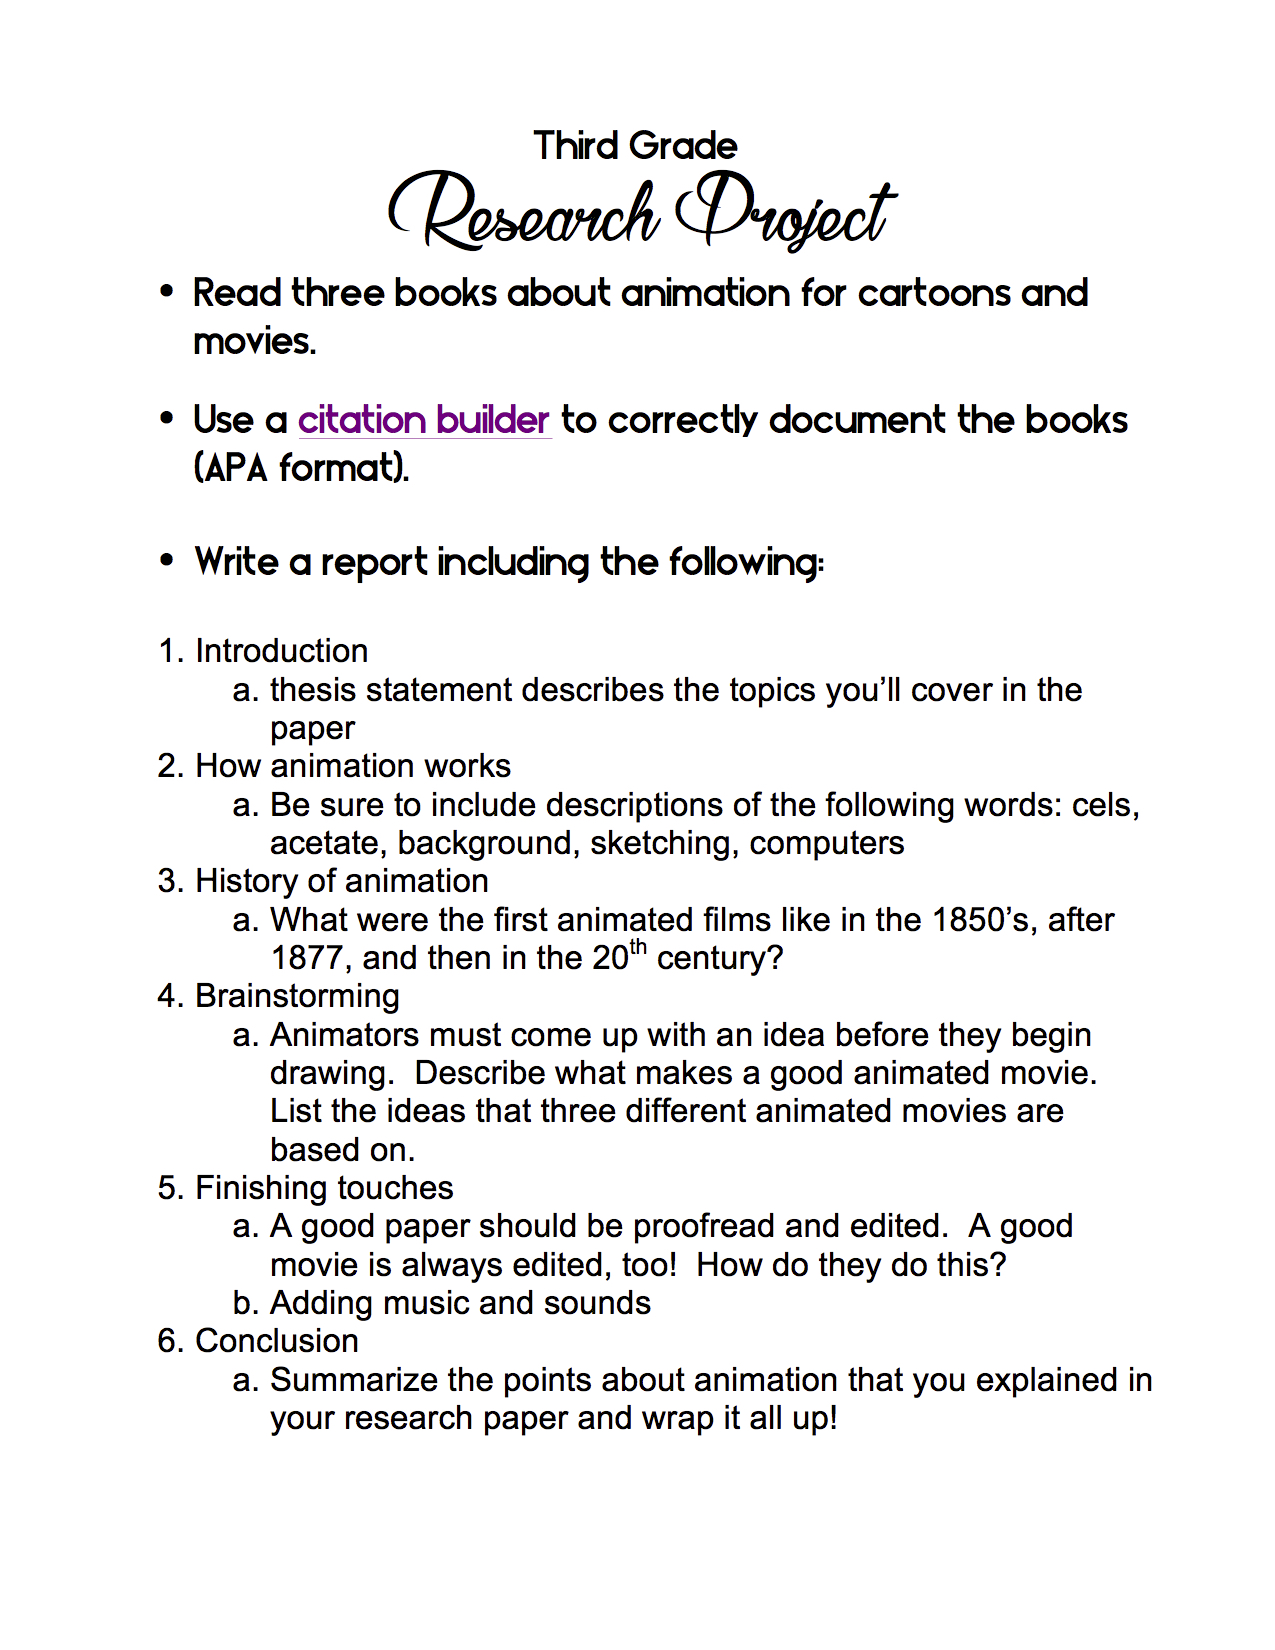 007 3rd Grade Research Project Cancer Paper Topic Surprising Ideas Breast Full